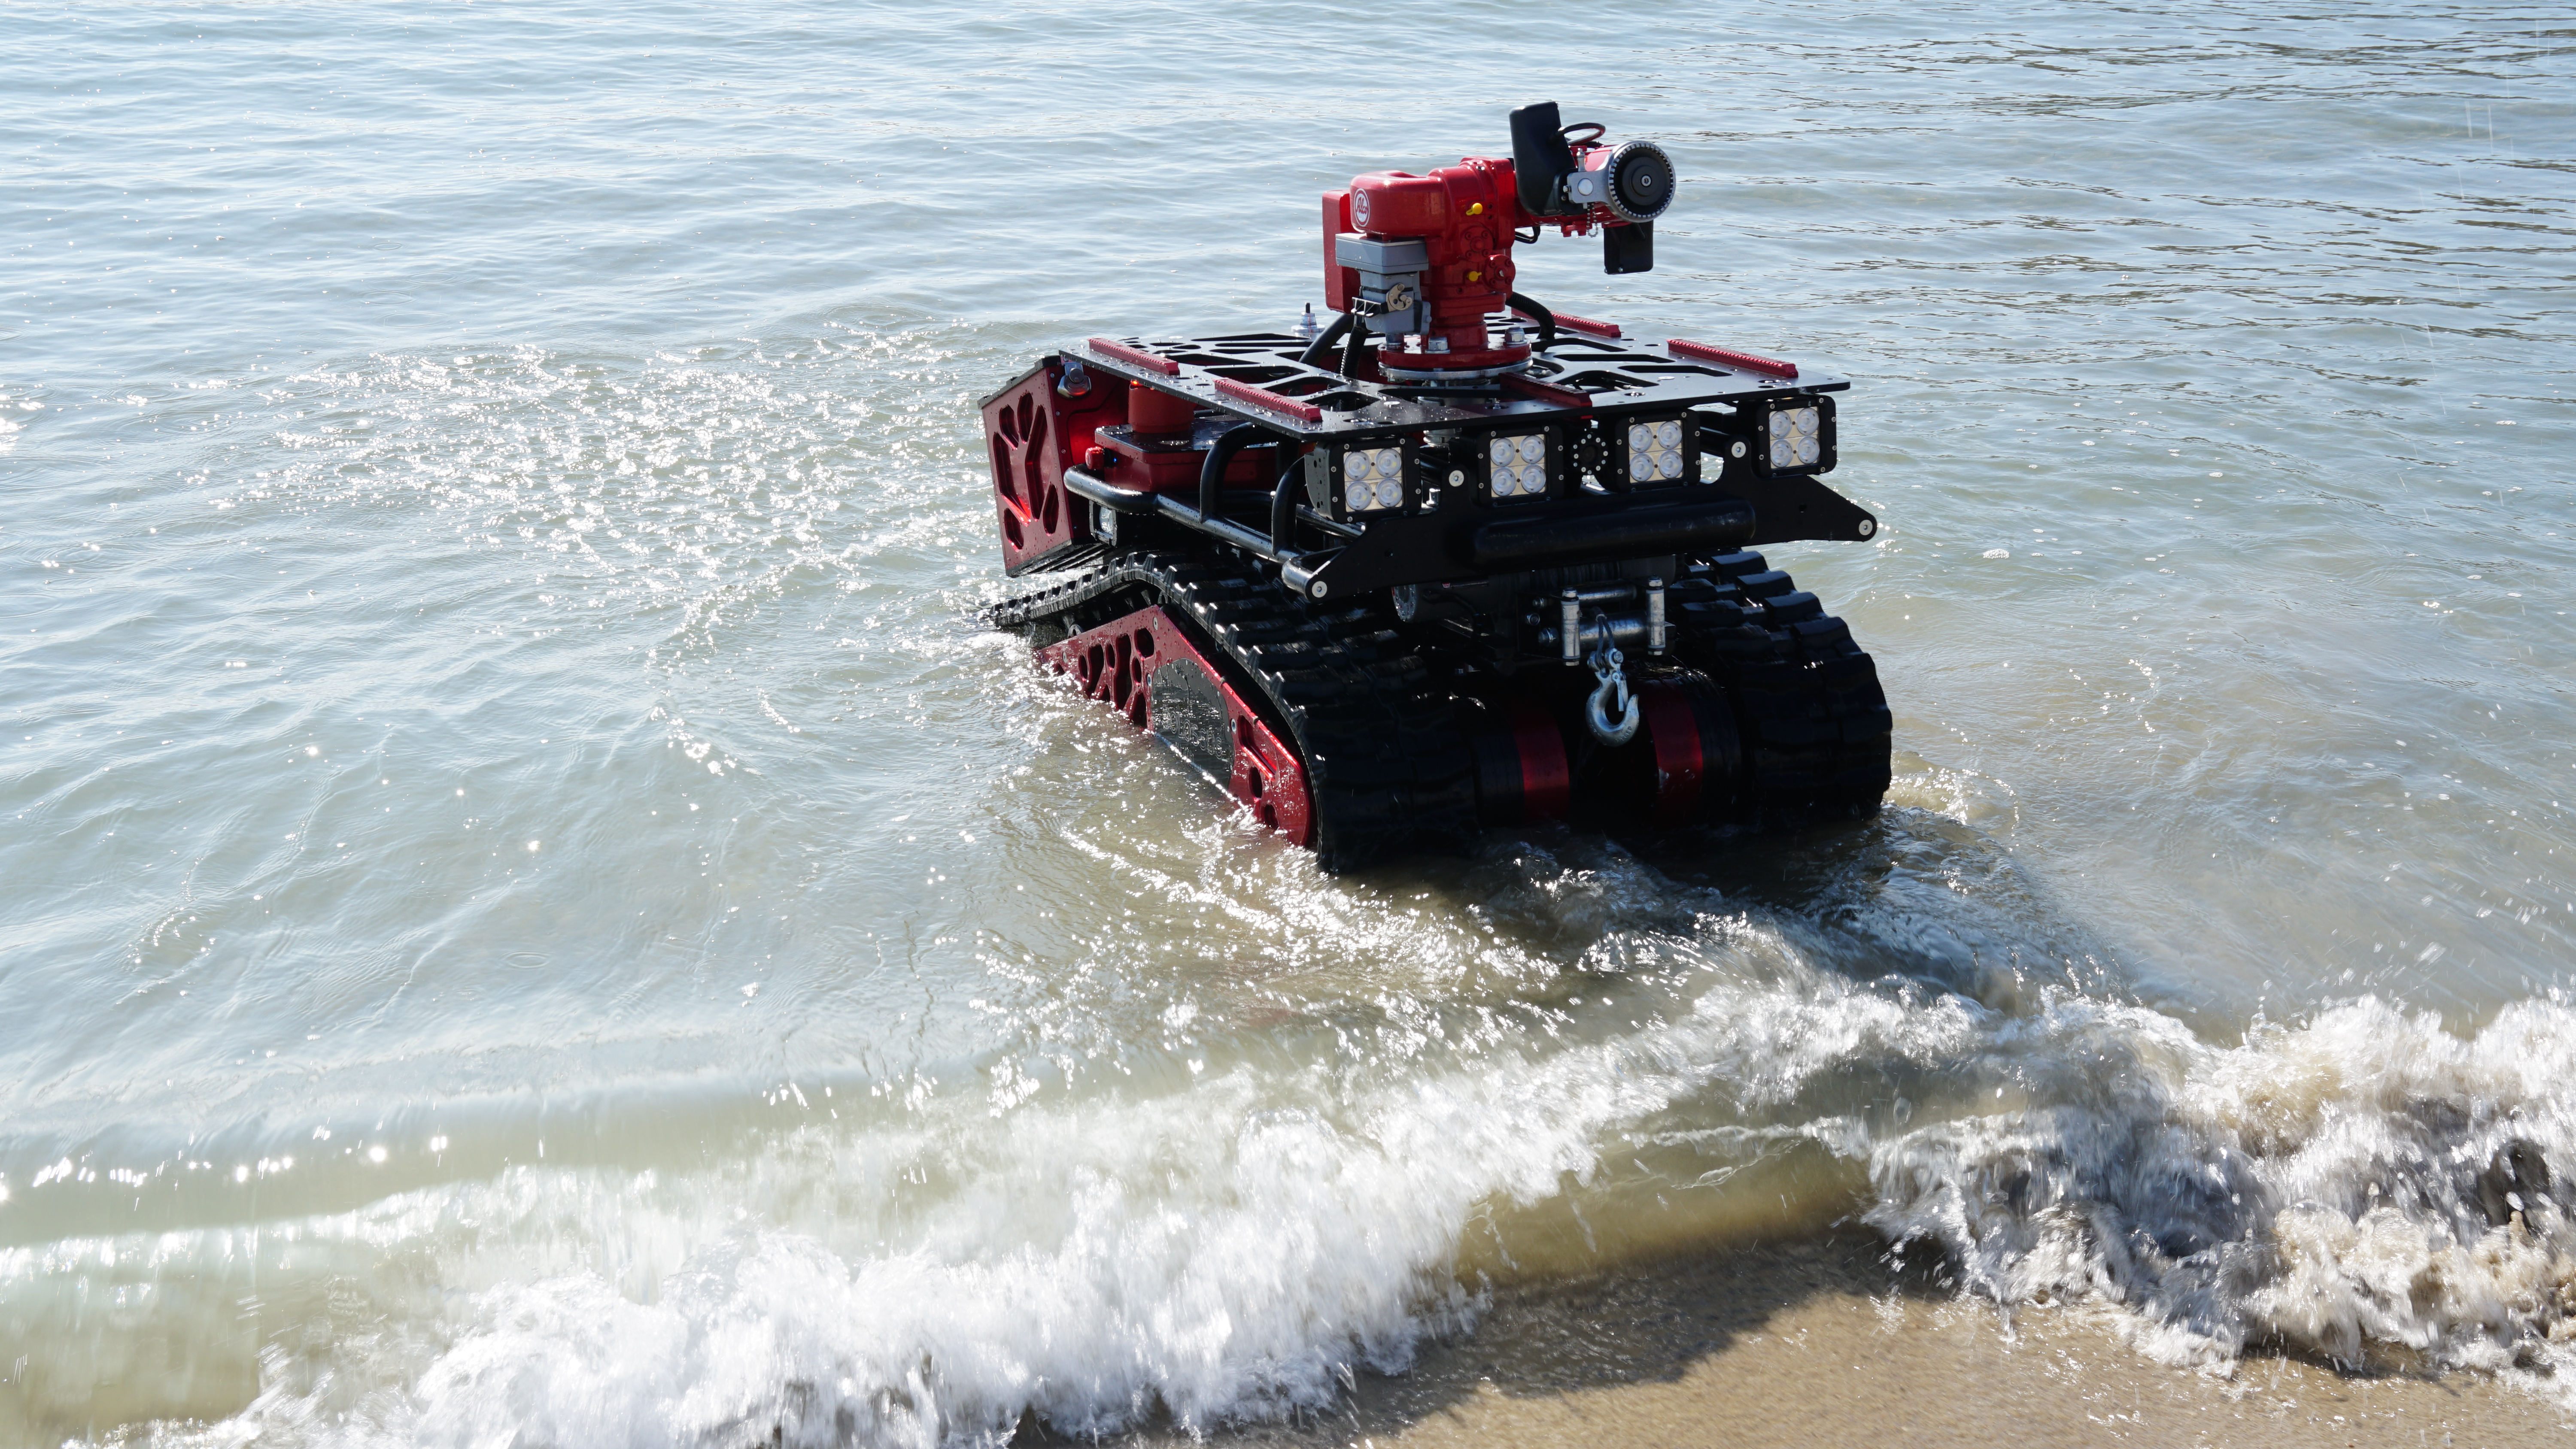 Colossus eau-Shark Robotics